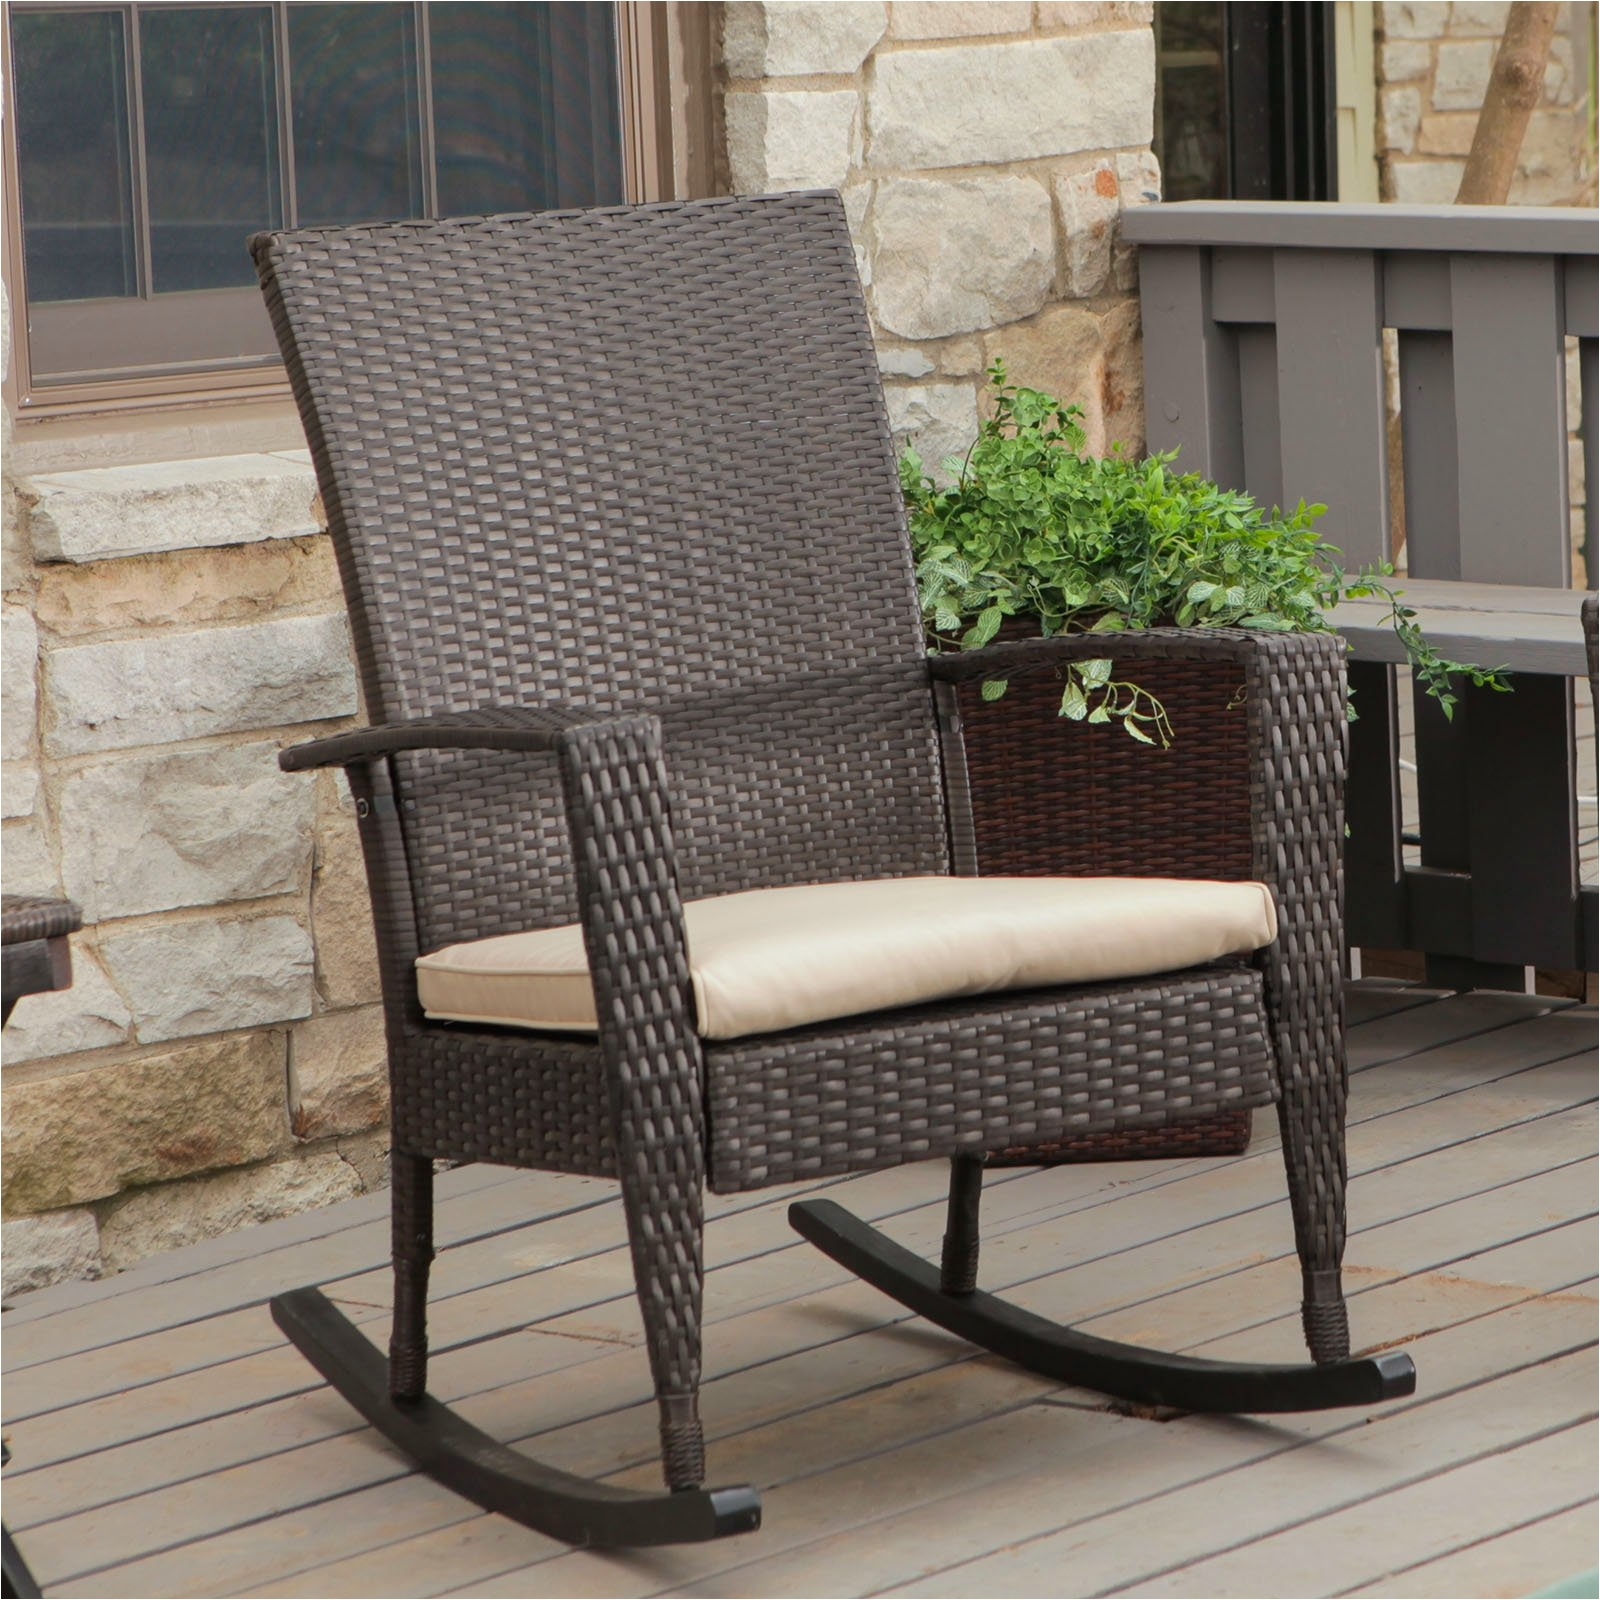 Sam S Club Folding Rocking Chairs Chair Patio Lounge Chairs Clearance Small Curved sofa Round